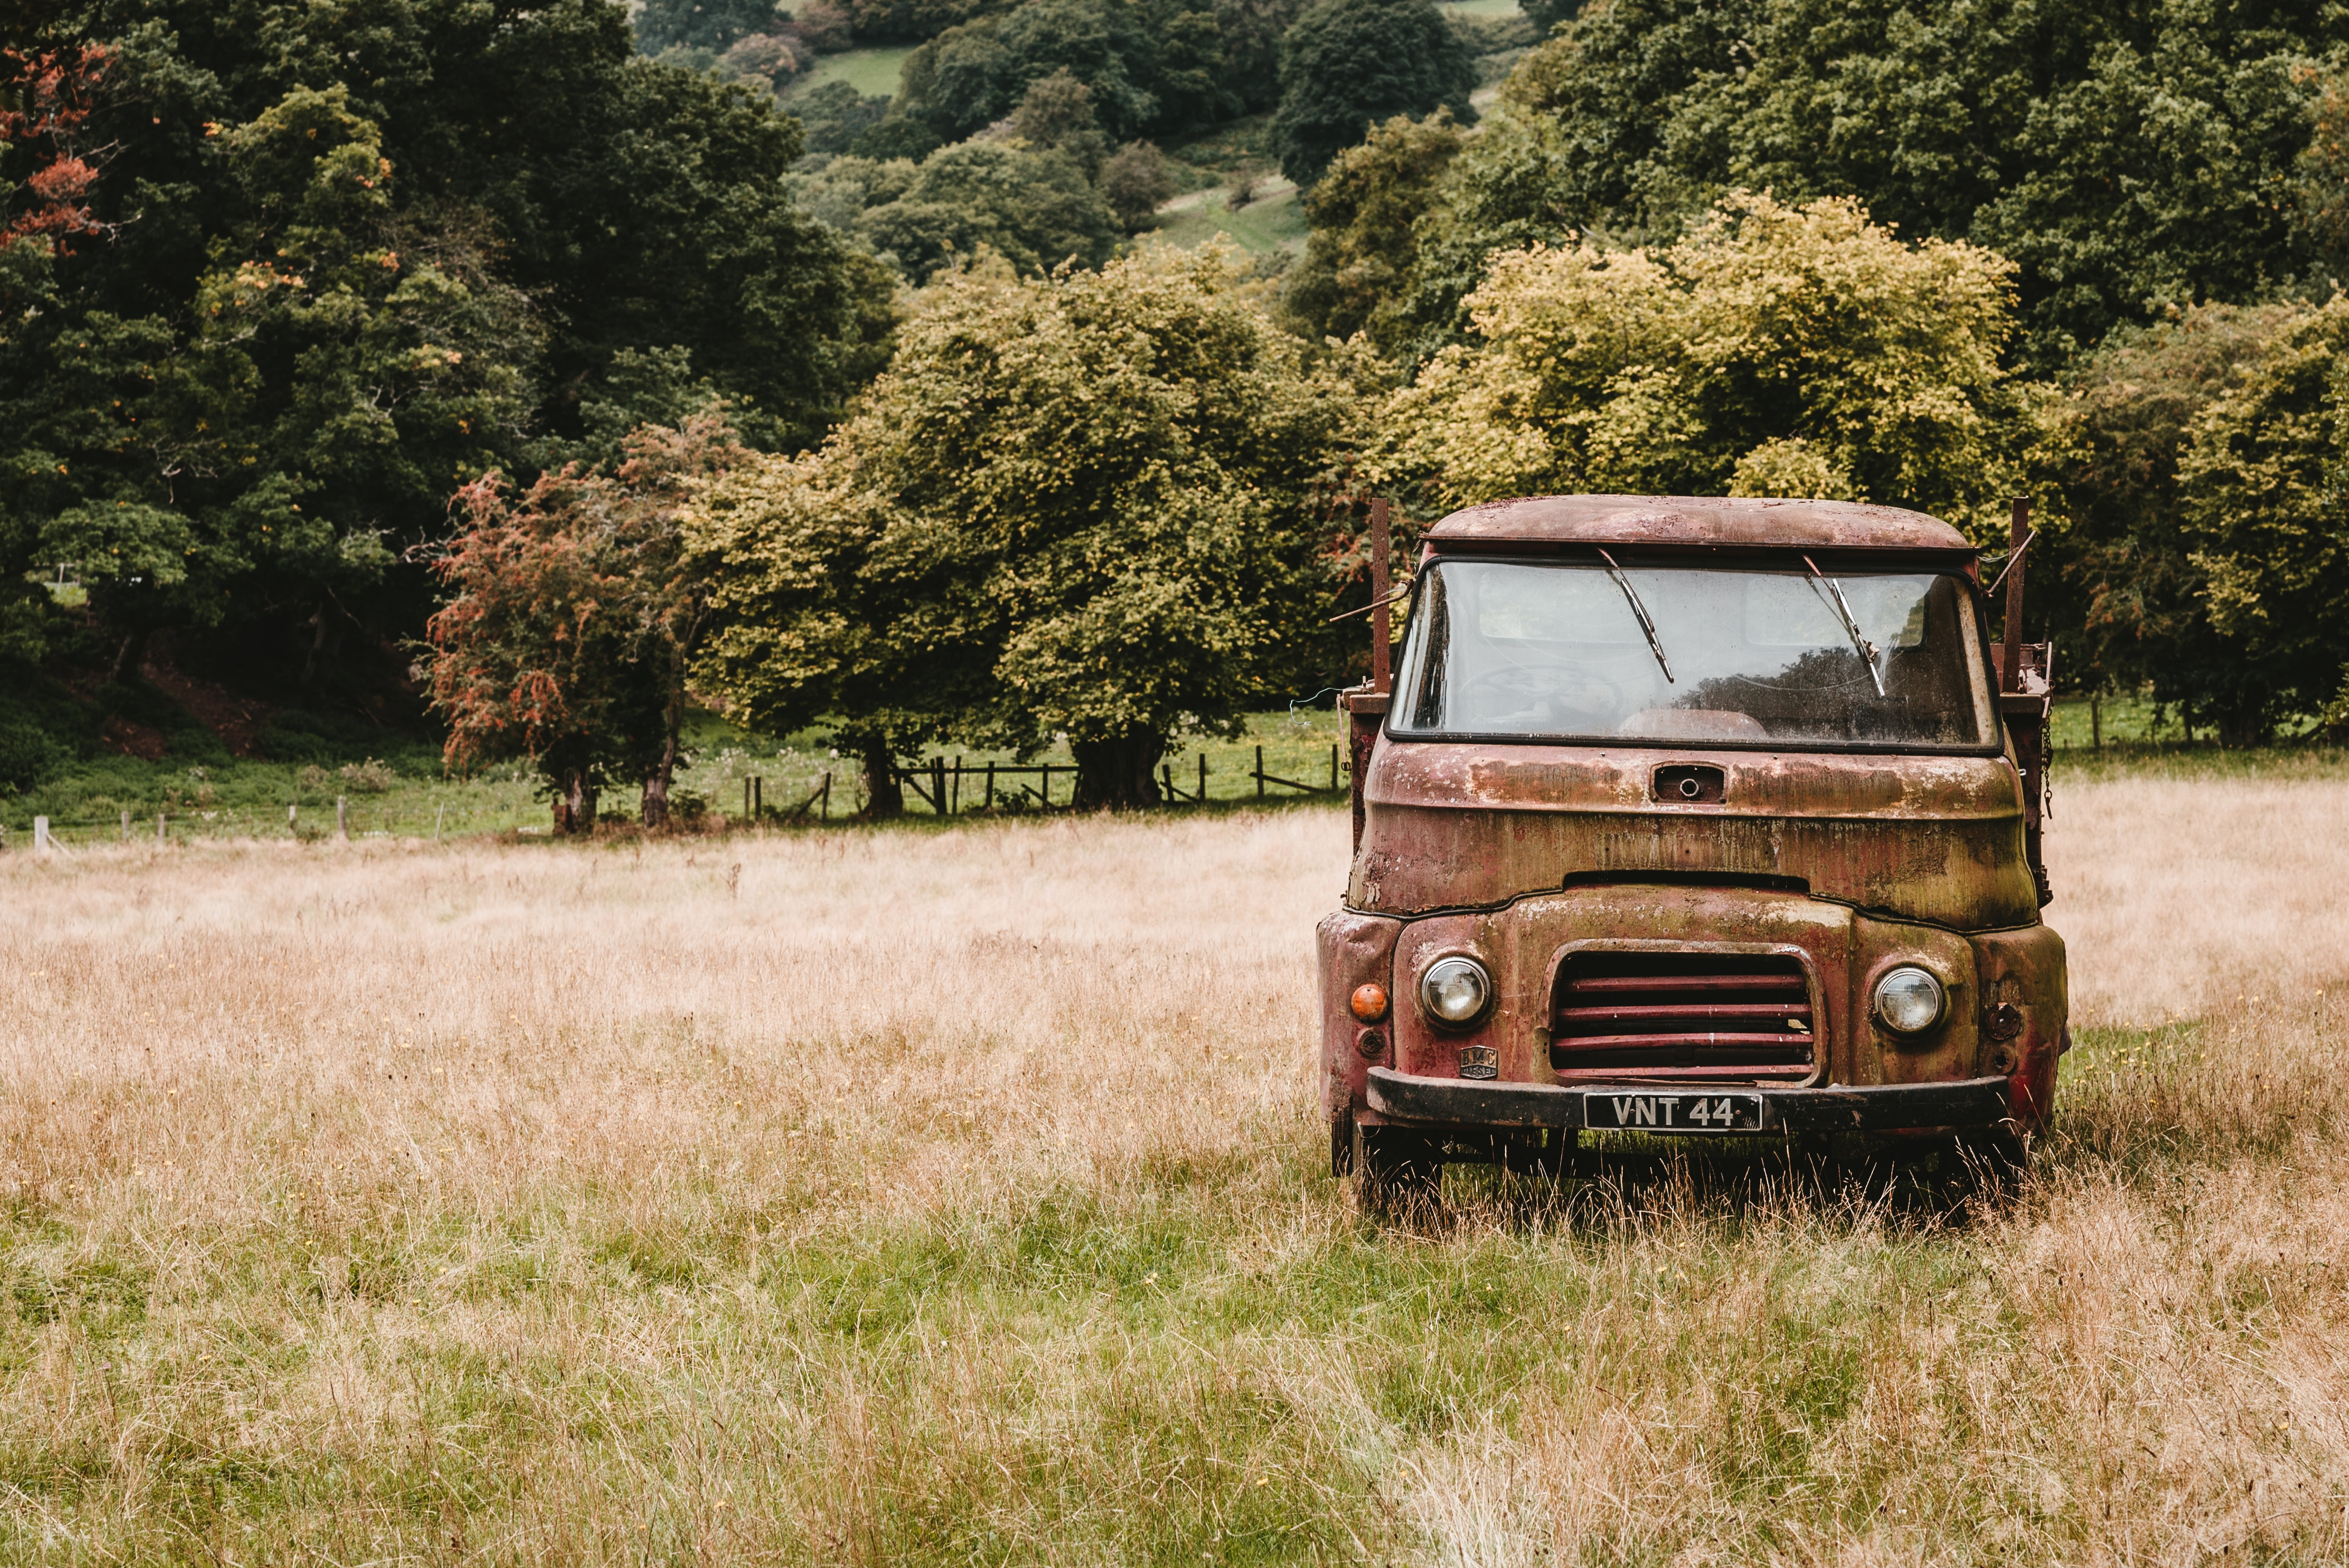 abandoned brown vehicle in the middle of grassland